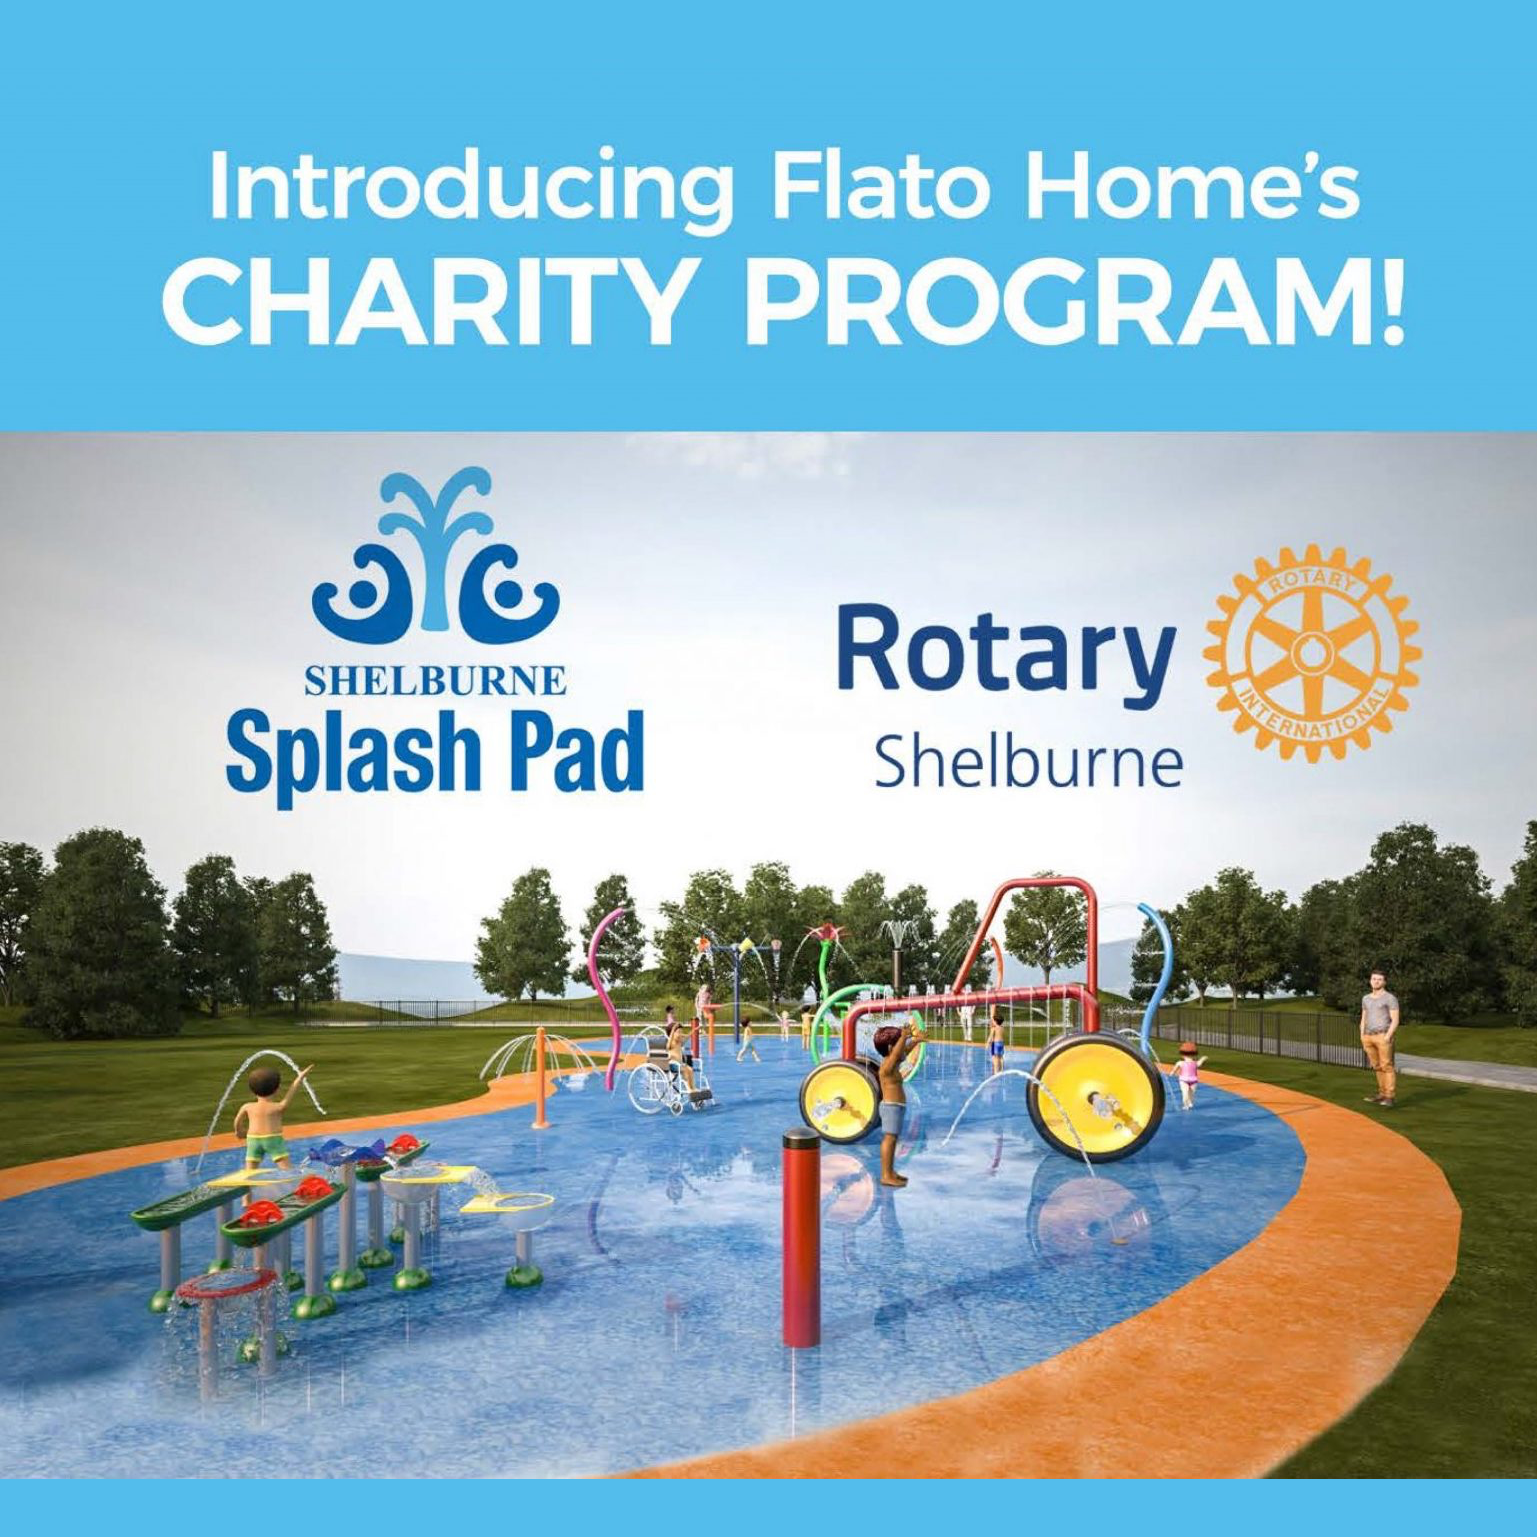 Help us raise money for the Shelburne Splash Pad